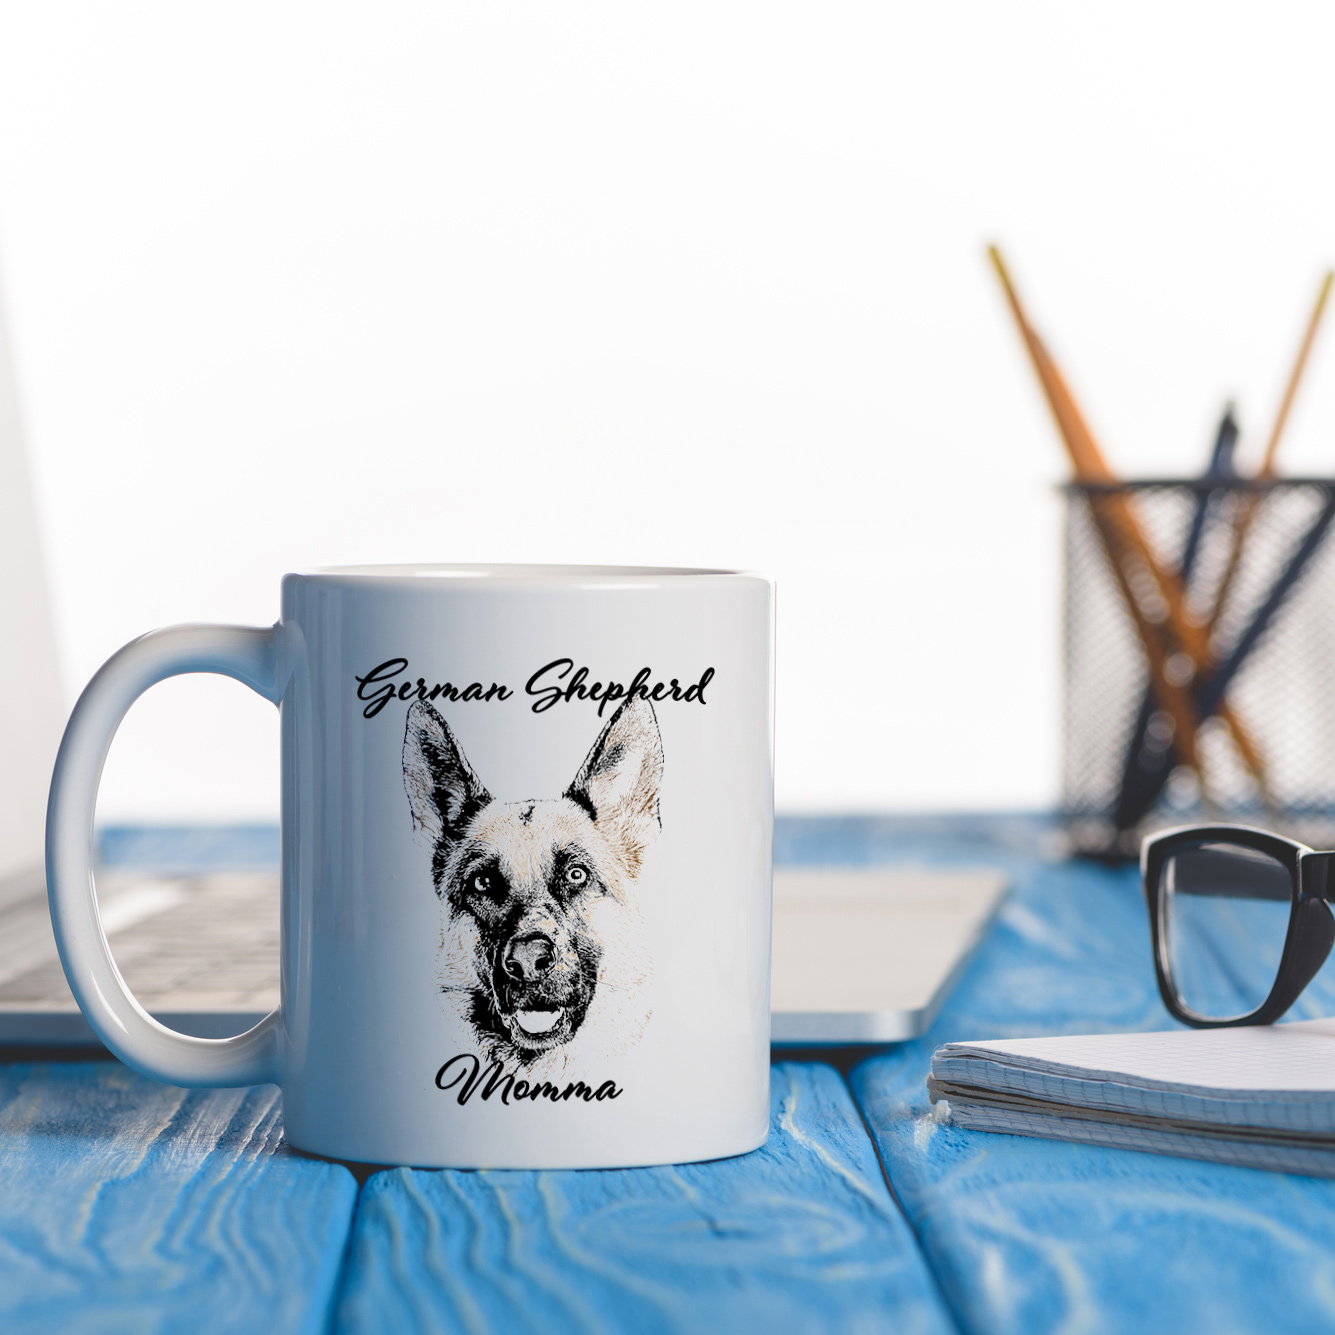 Dog Momma Mug - German Shepherd